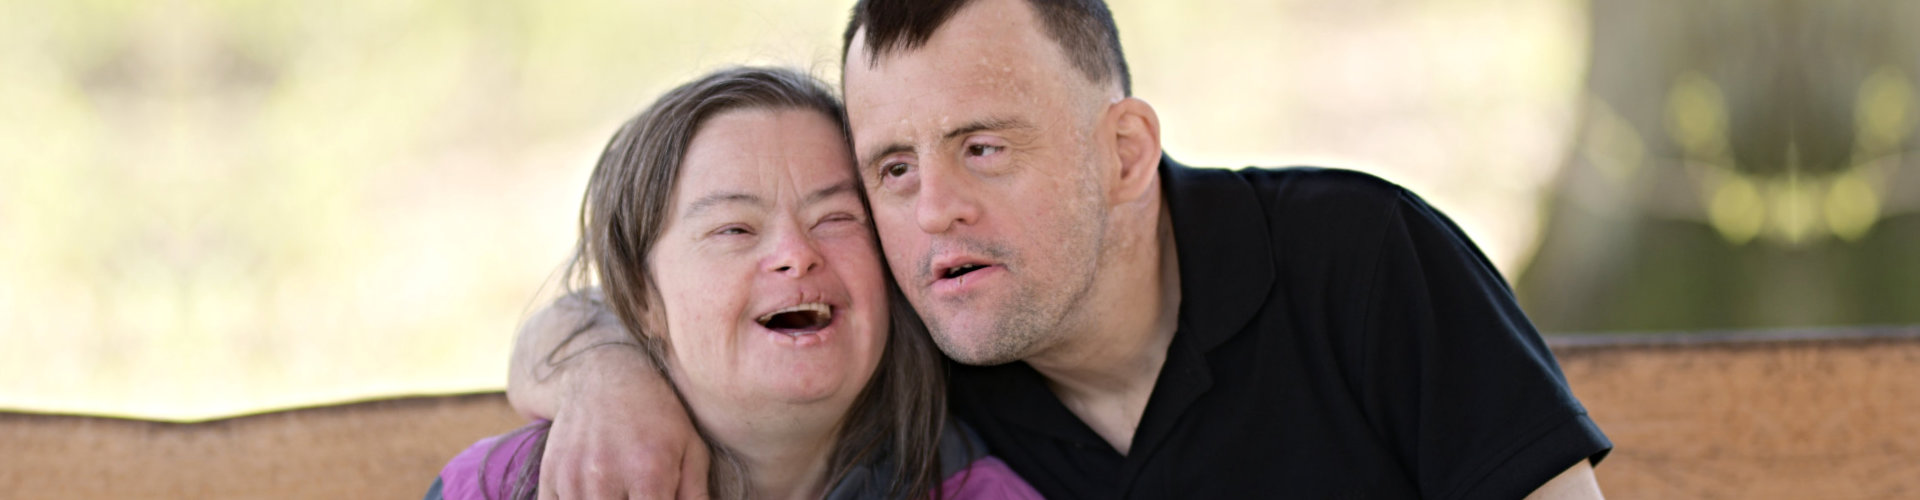 couple with down syndrome smiling